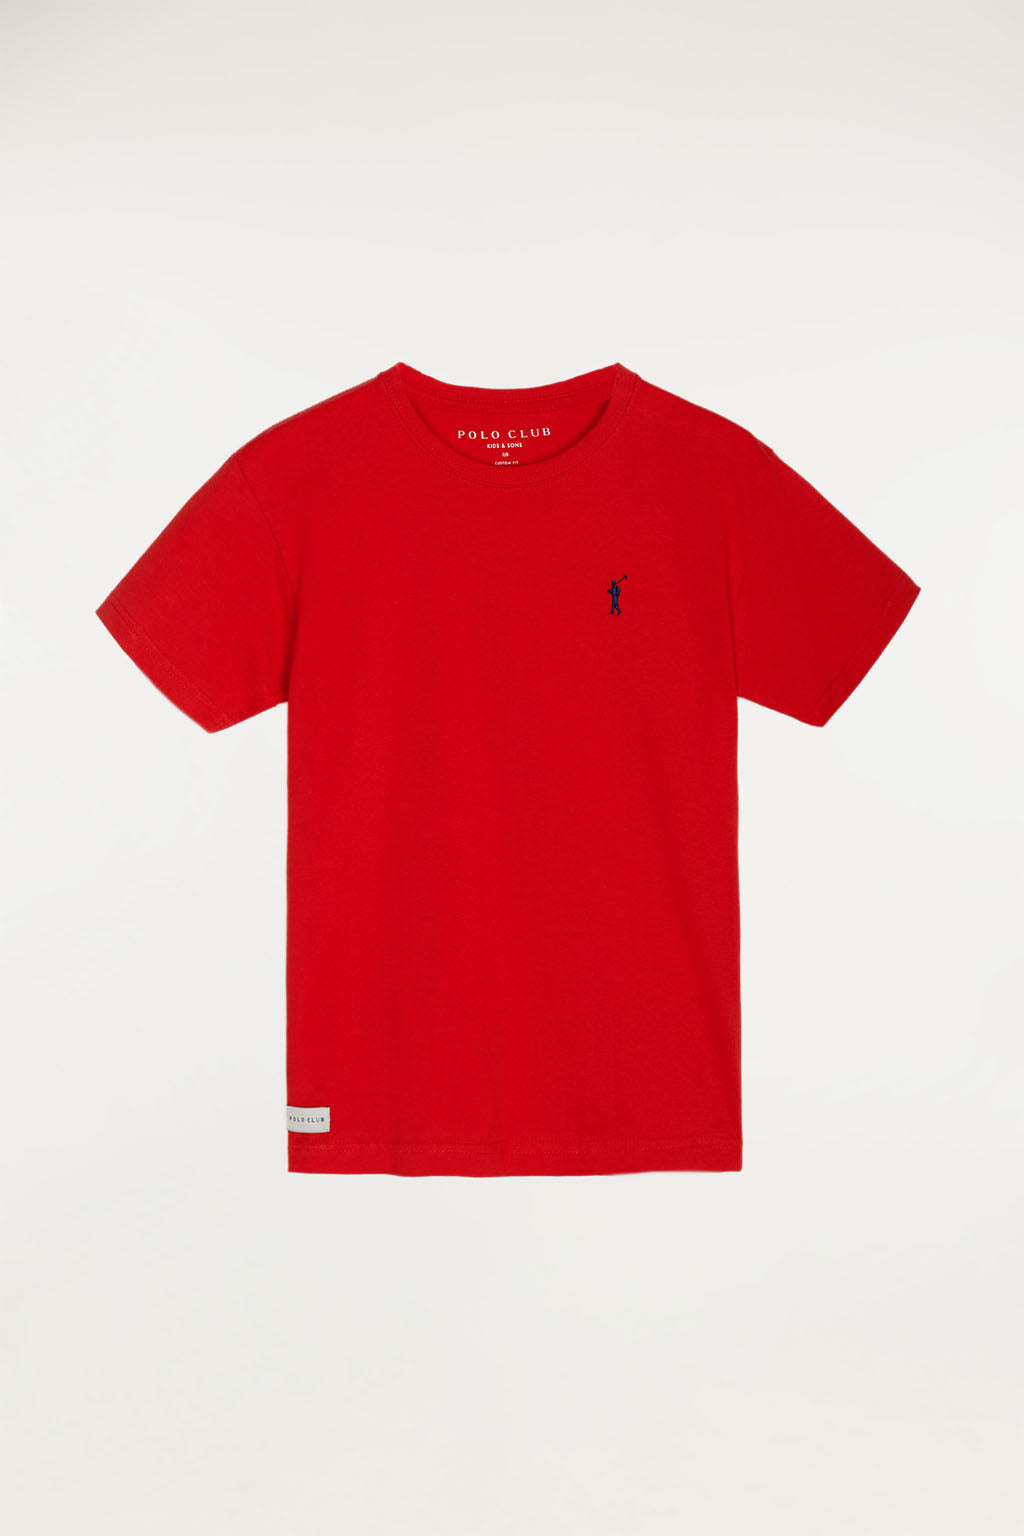 Red tee with small embroidered logo